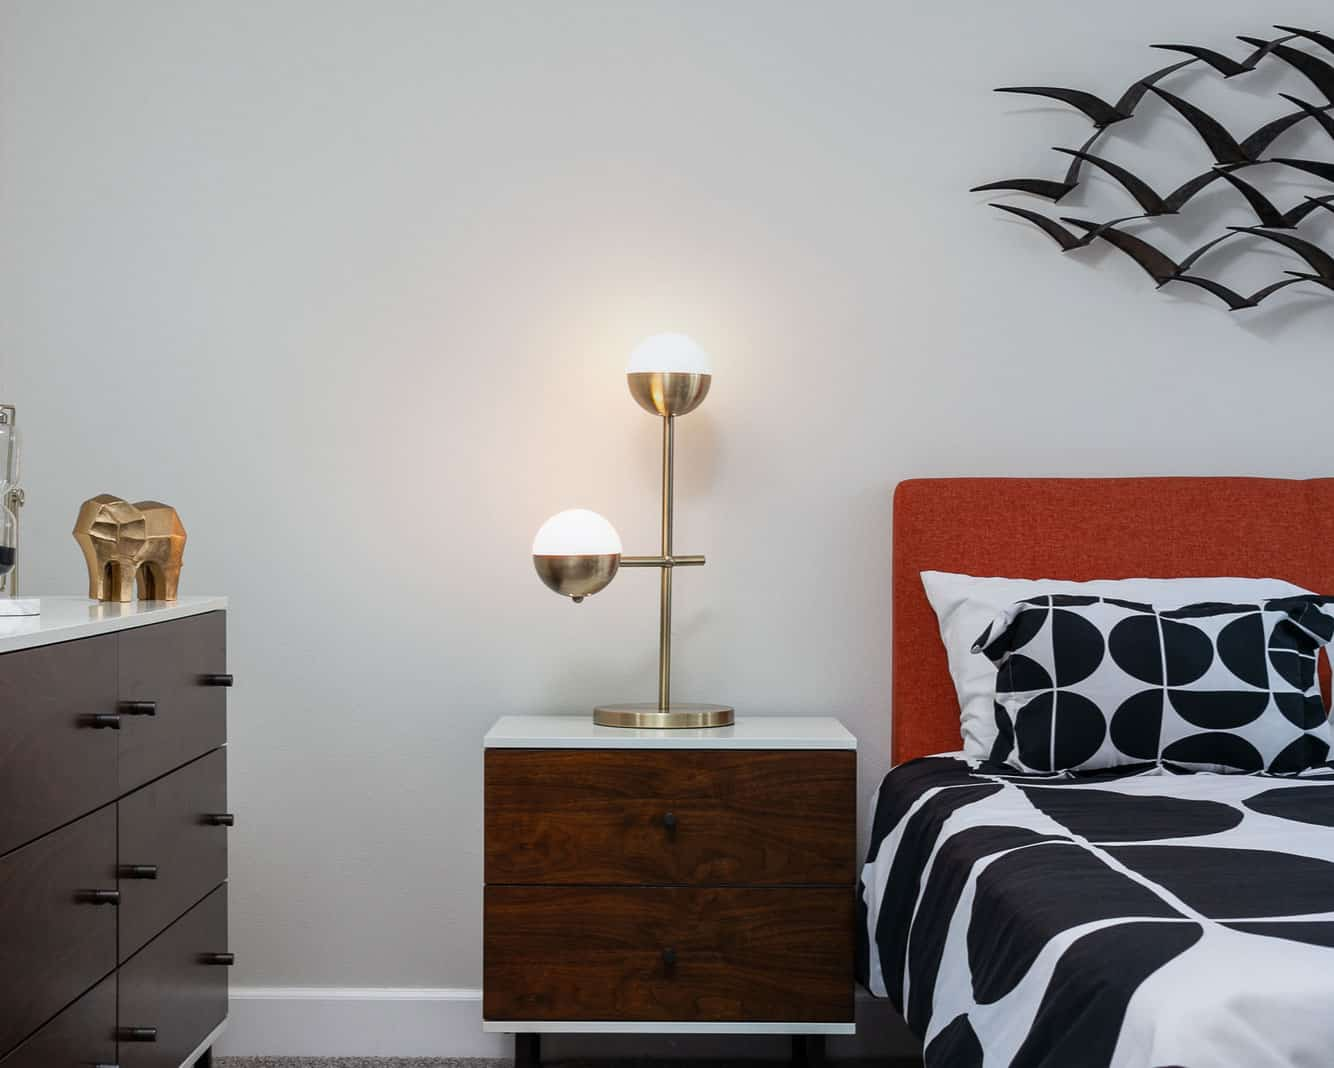 Bedroom with bedside table, lamp, bed, dresser, and decor